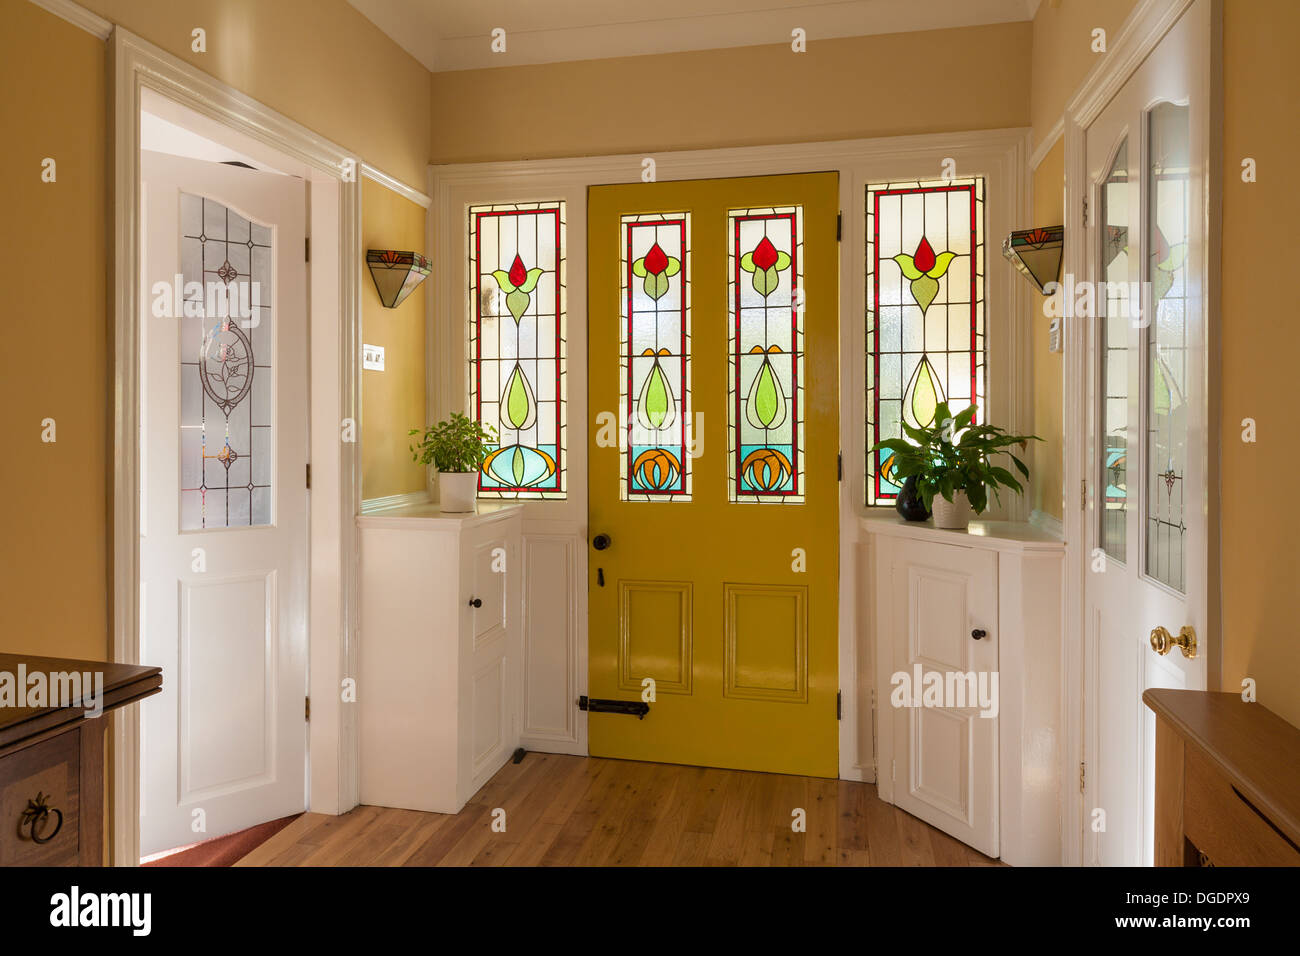 front door and hallway of domestic house stock photo 61768961 alamy